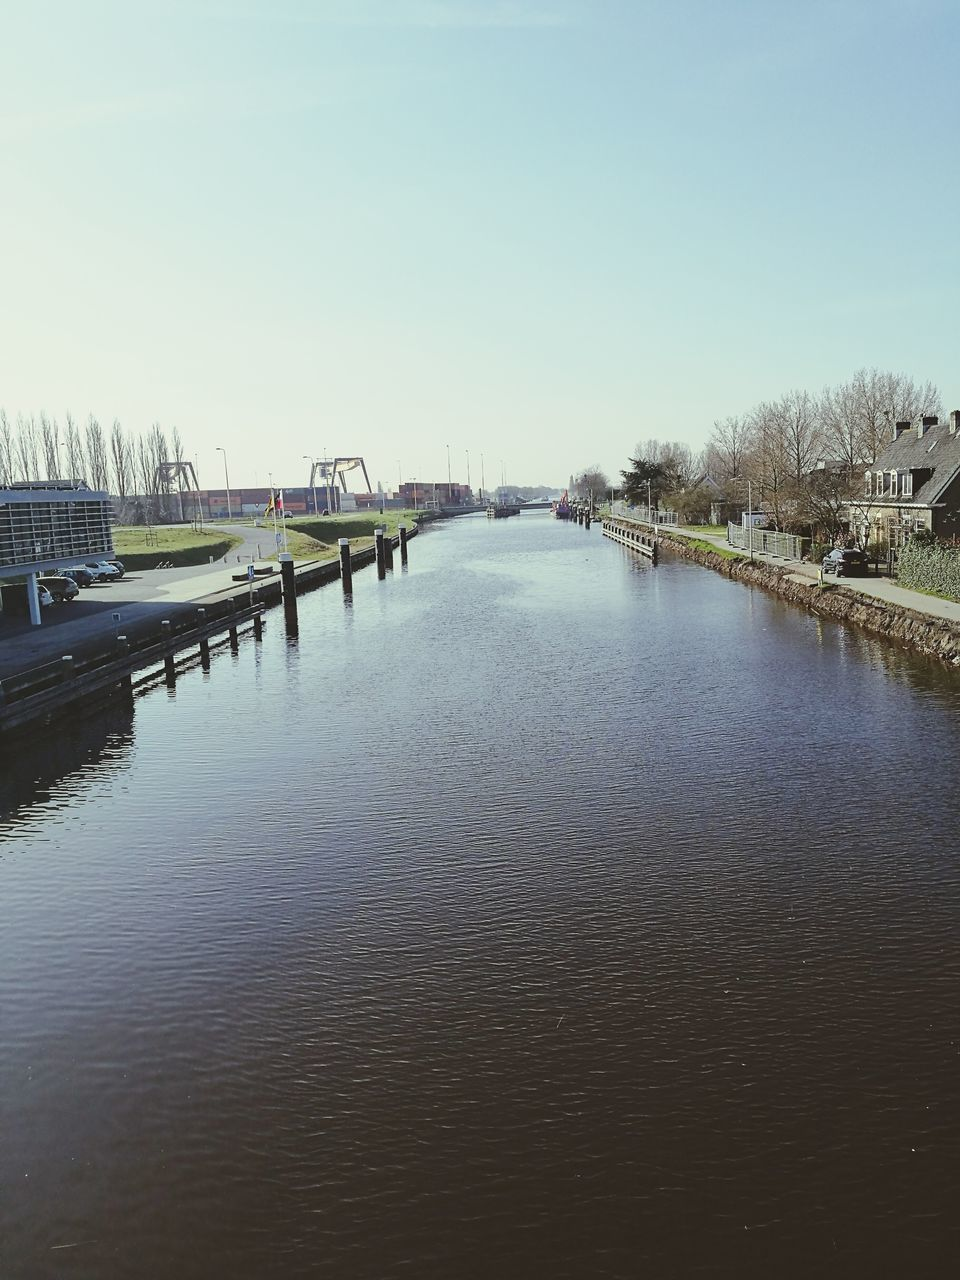 river, water, architecture, bridge - man made structure, connection, built structure, outdoors, waterfront, building exterior, no people, day, city, sky, clear sky, nature, tree, cityscape